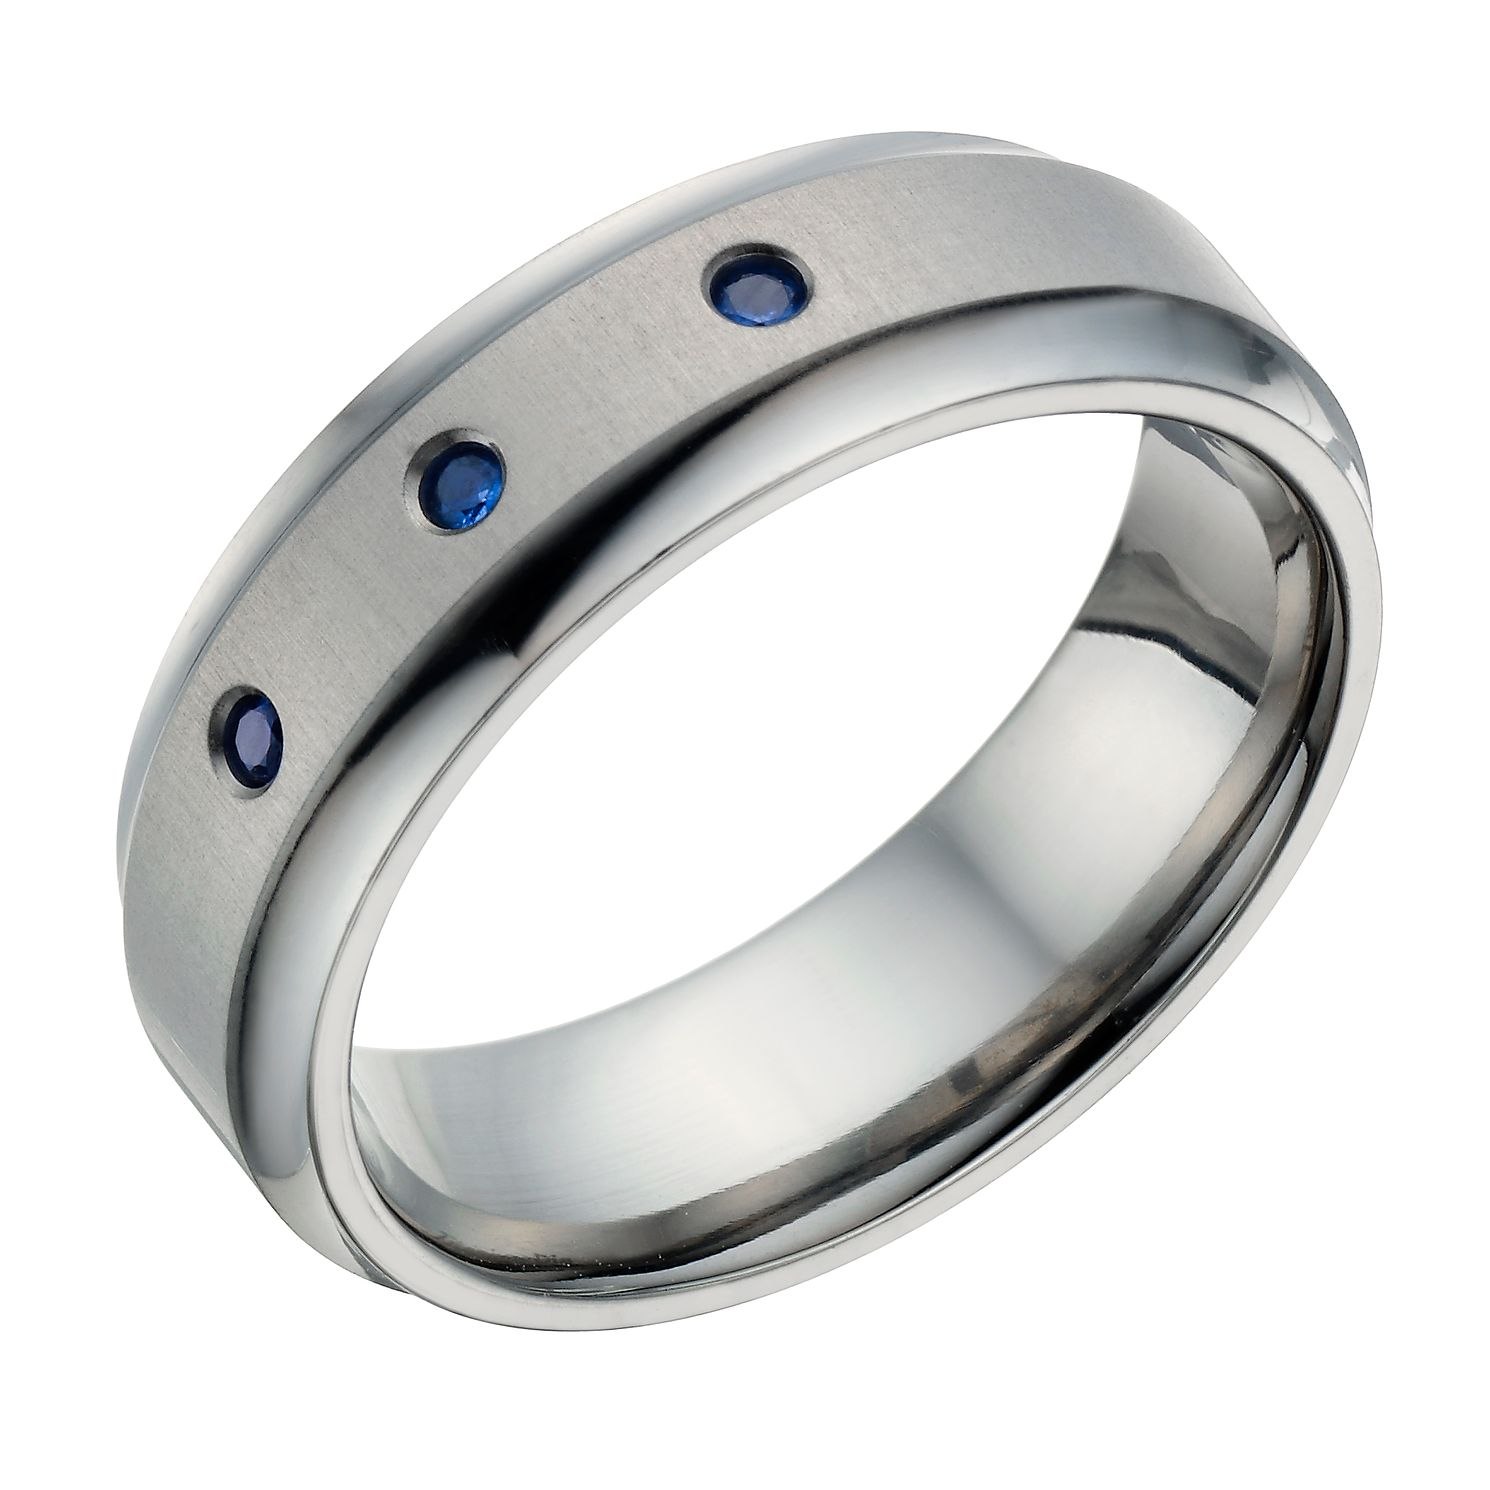 titanium p platinum band ring bands cz engraved hand wedding stone